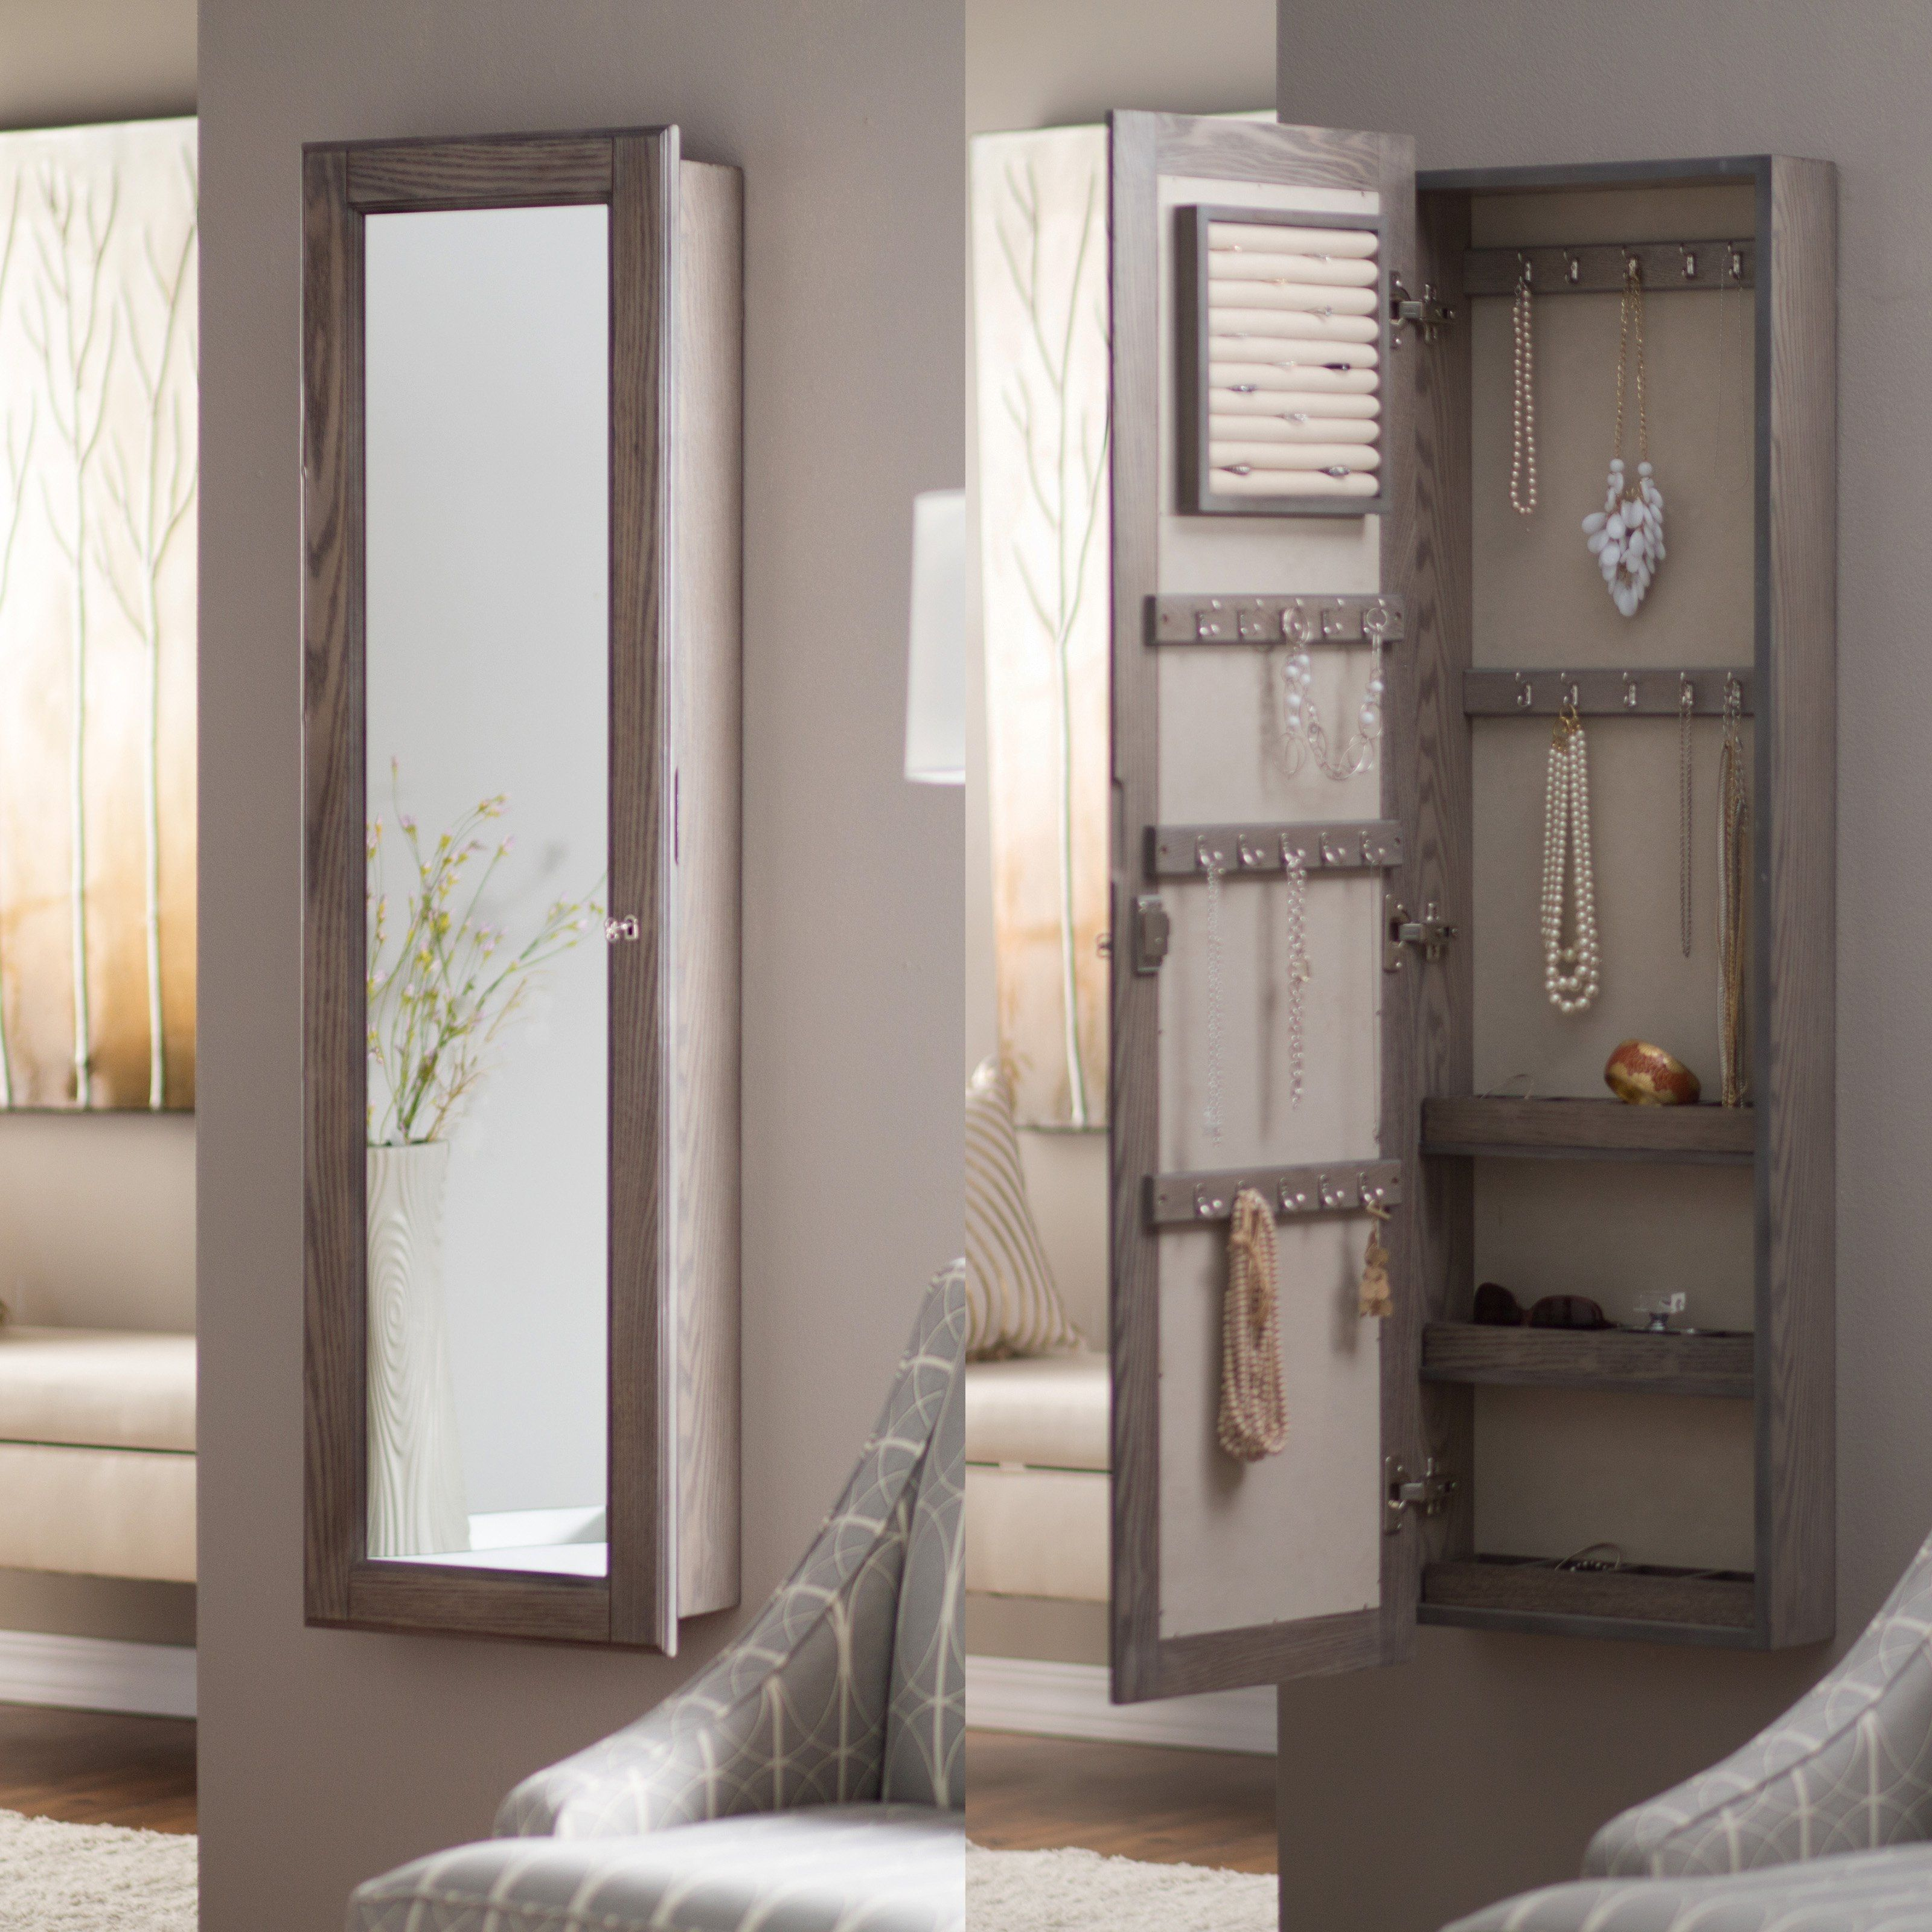 Wall Mounted Mirror Jewelry Armoire httpdrrwus Pinterest